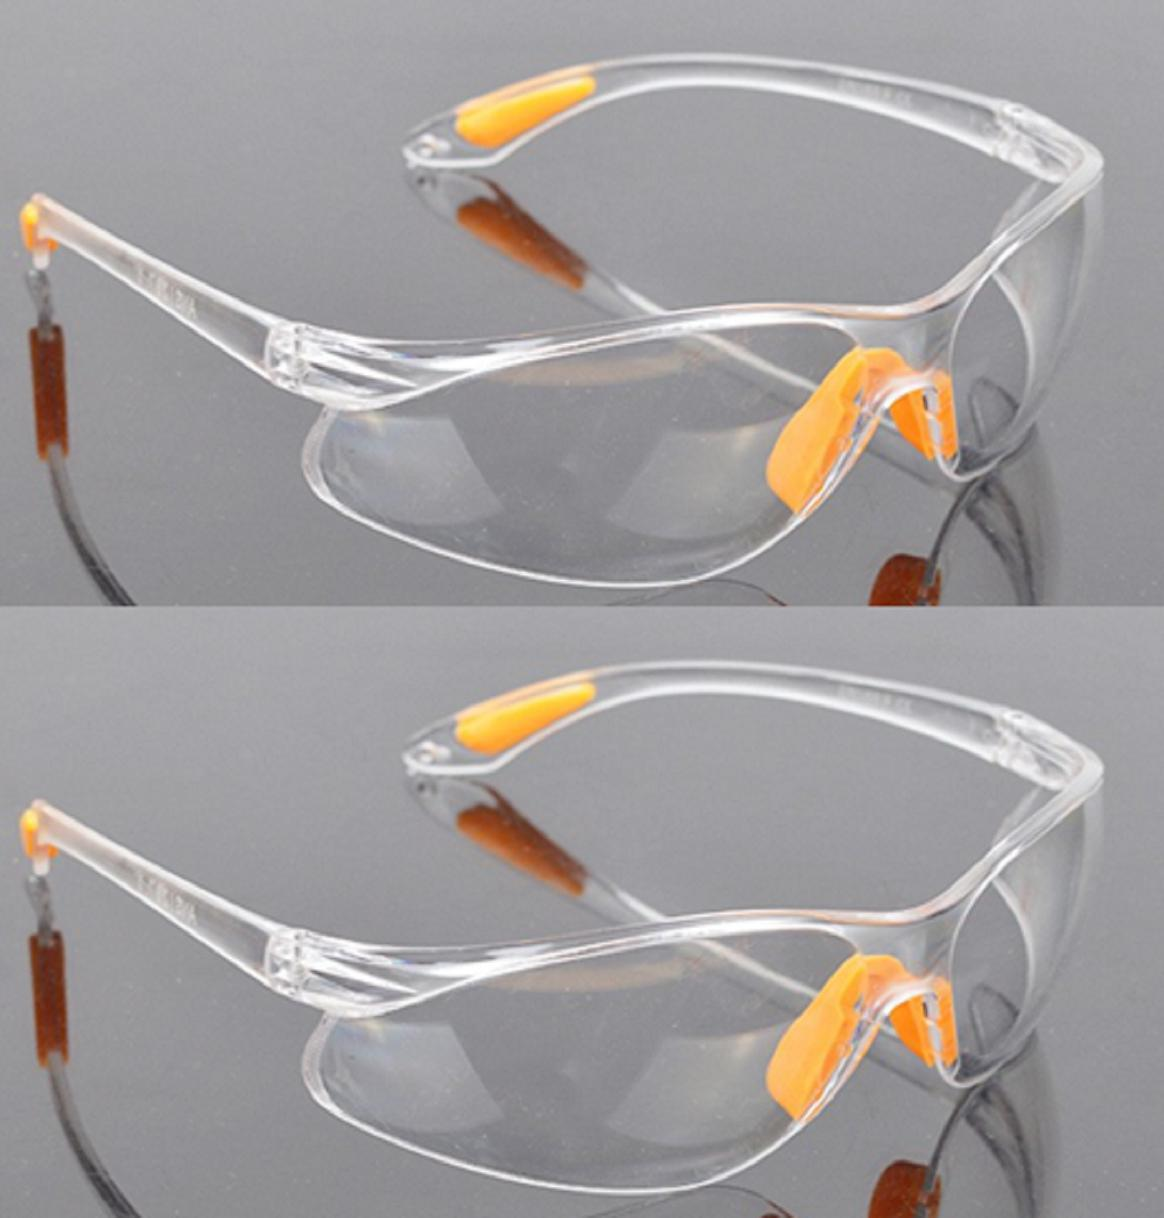 f7bf1592363c Dustproof Security Goggles PC Eye Protector Safety Labor Glasses With Free  Pouch And Free